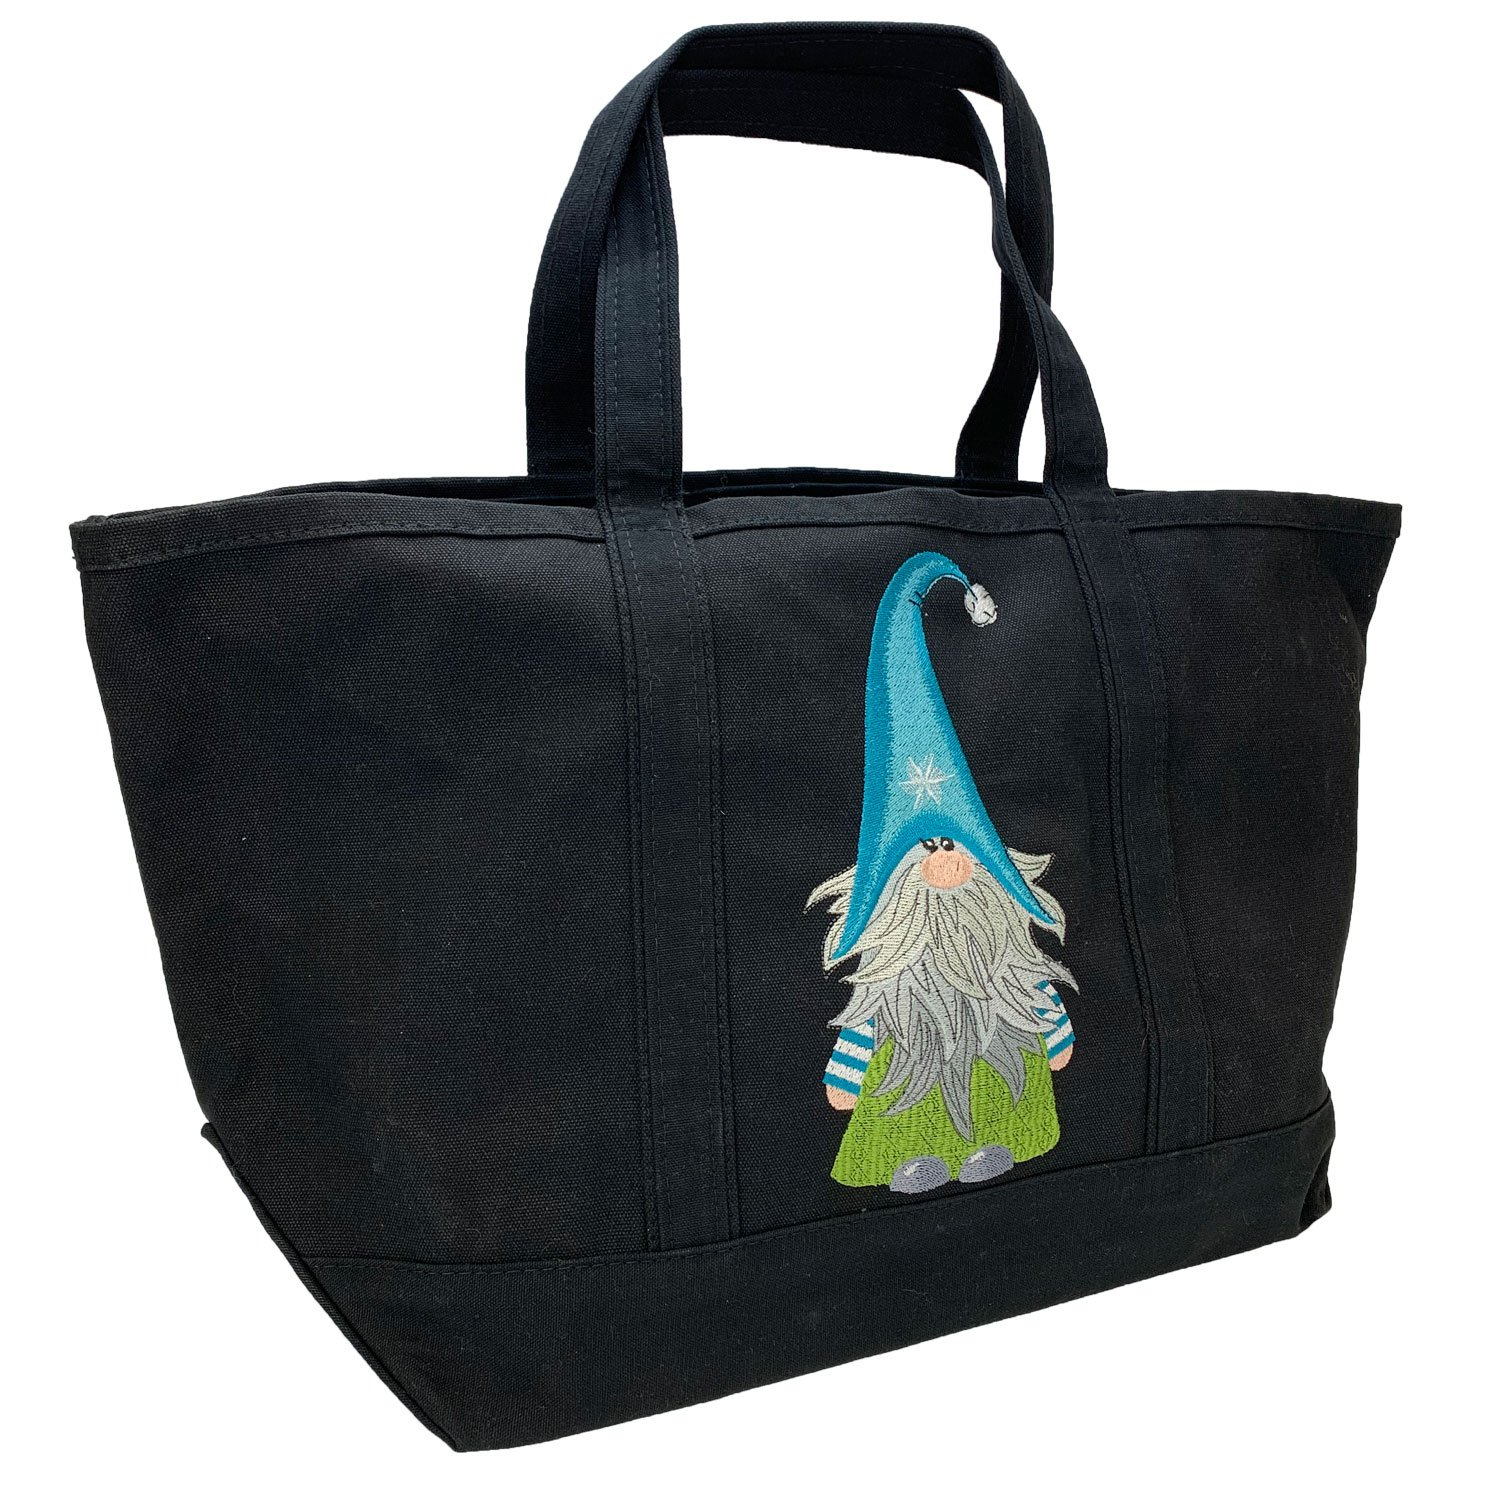 Embroidered Canvas Tote Large Black Gnome